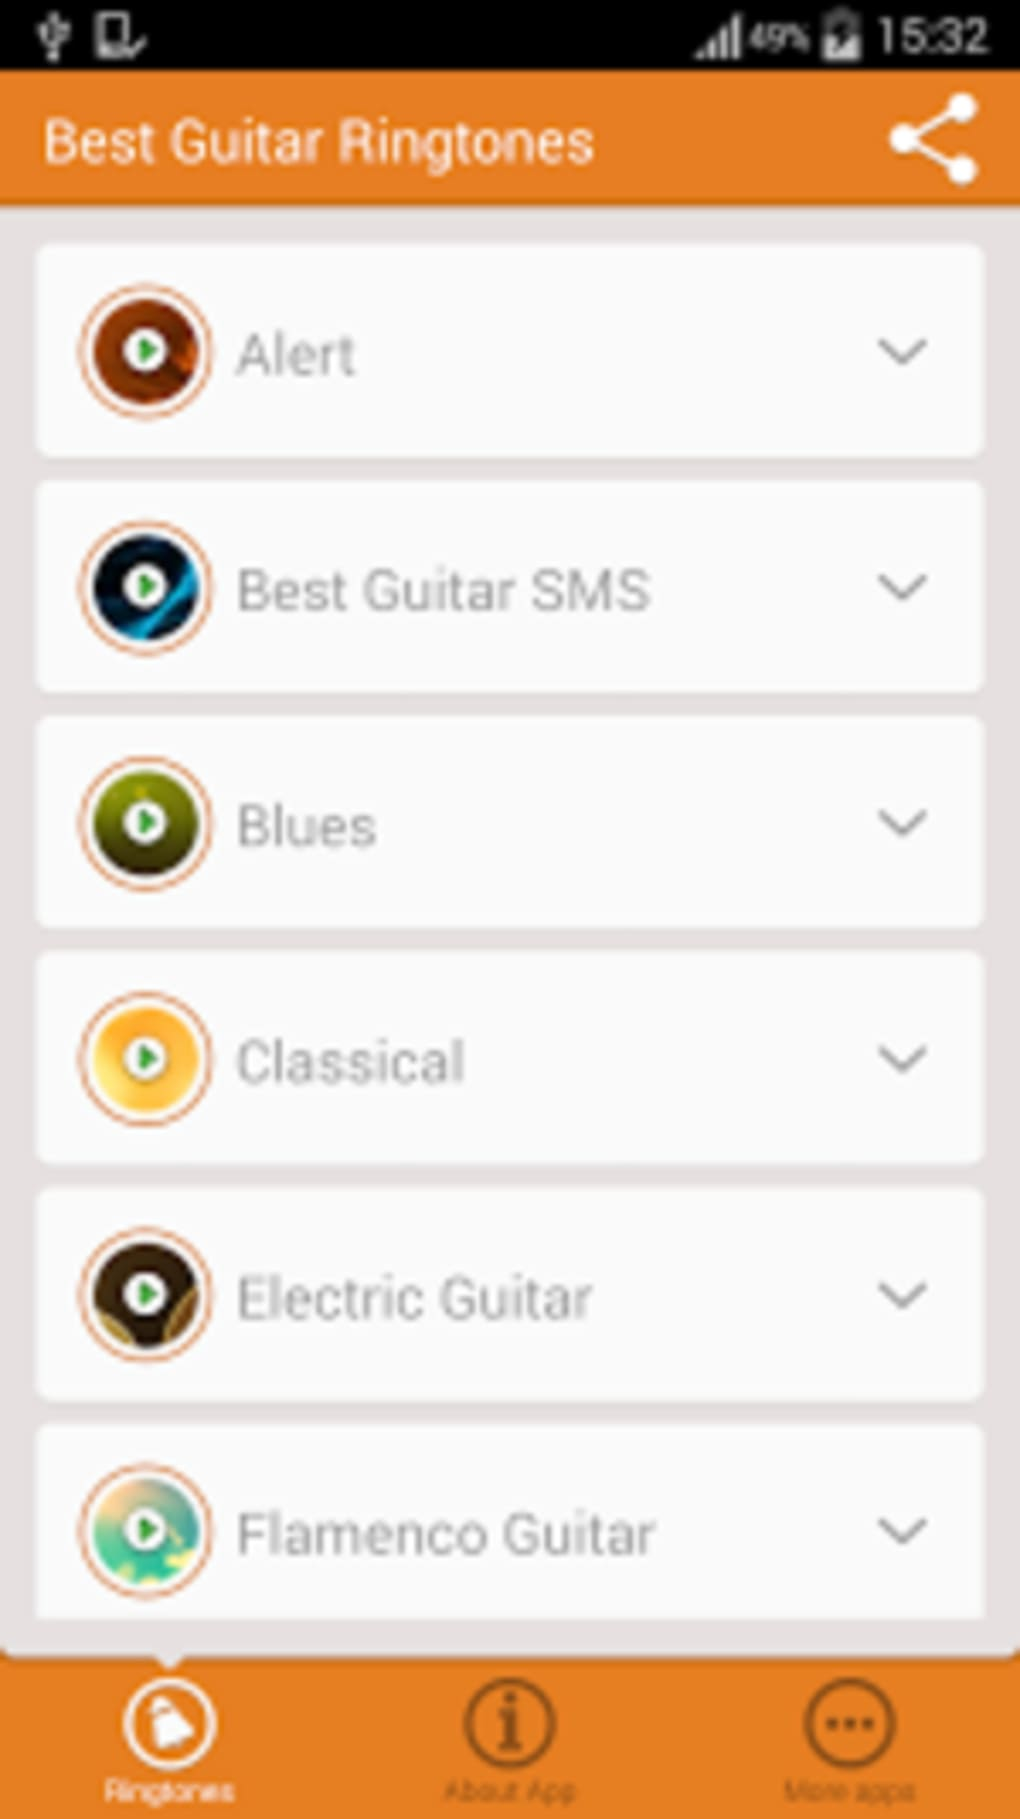 Best Guitar Ringtones for Android - Download